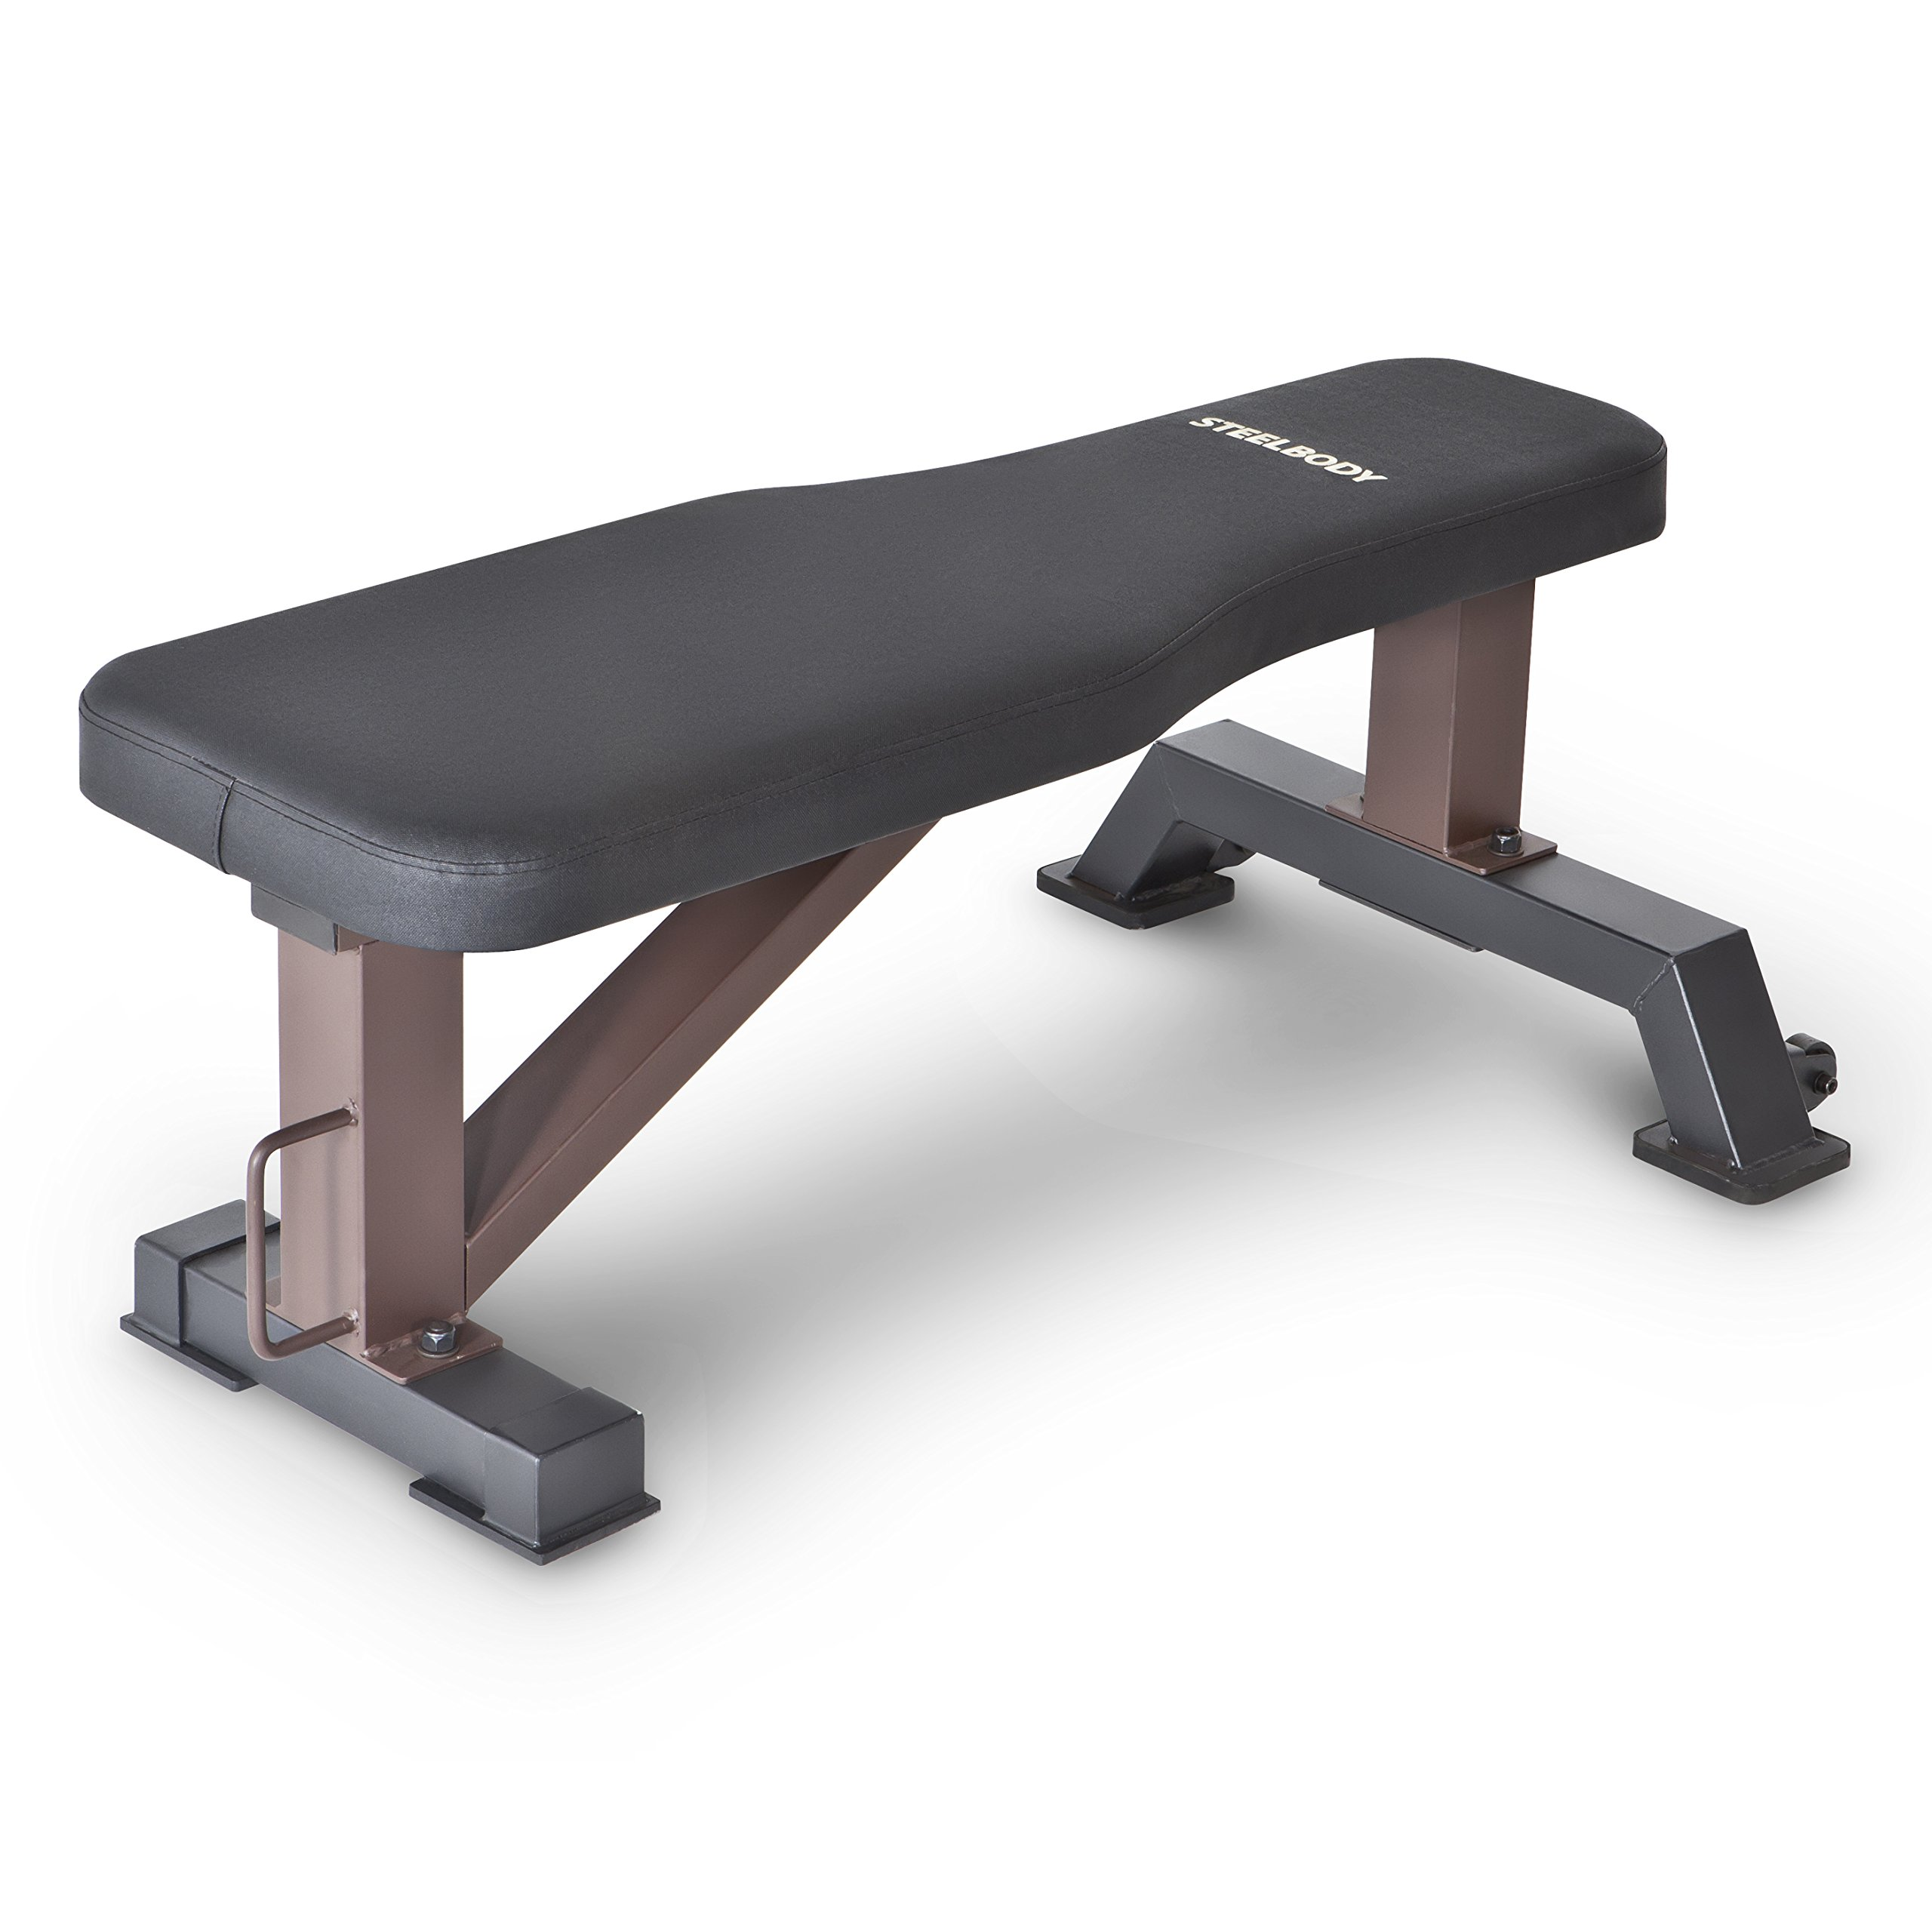 Steelbody Flat Bench STB-10101